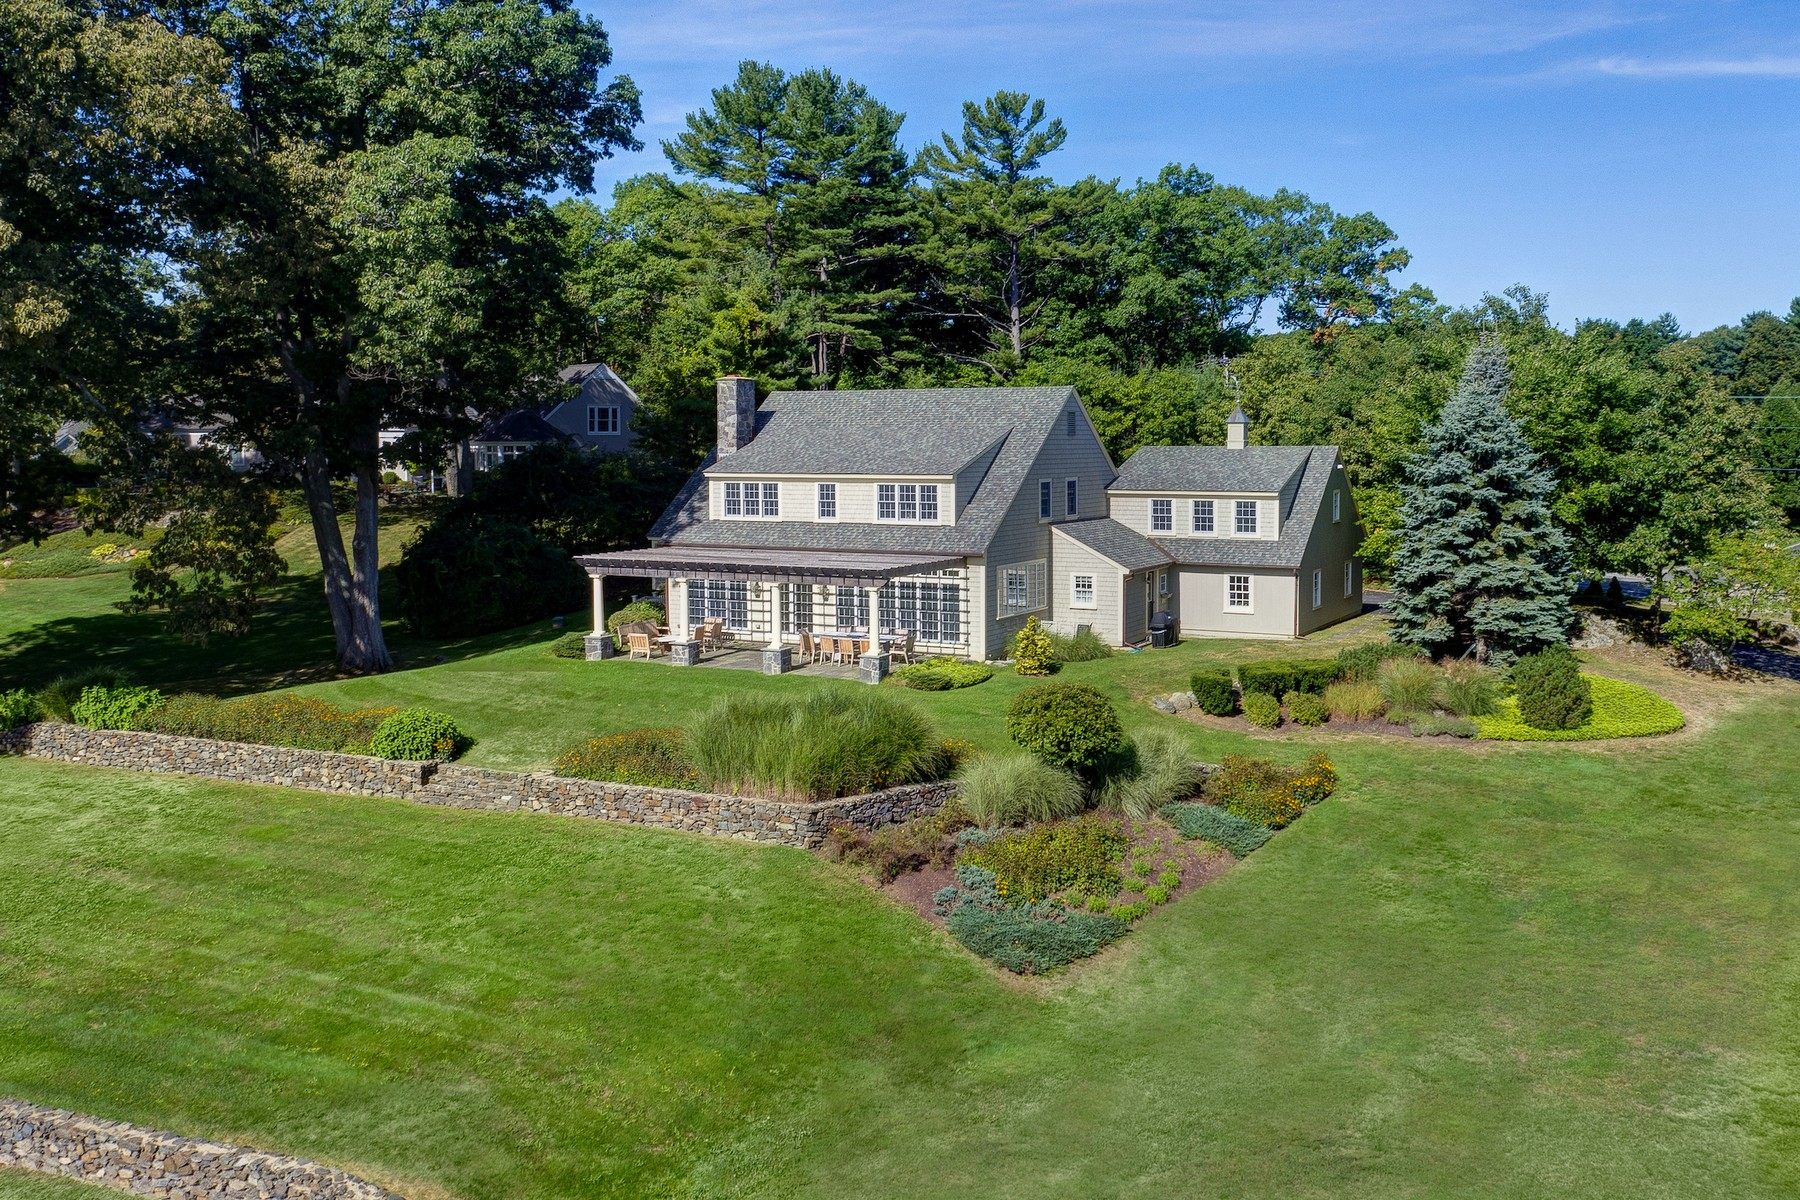 Maison unifamiliale pour l Vente à Overlooking the 18th at Wentworth by the Sea CC 90 Wentworth Road Rye, New Hampshire, 03870 États-Unis